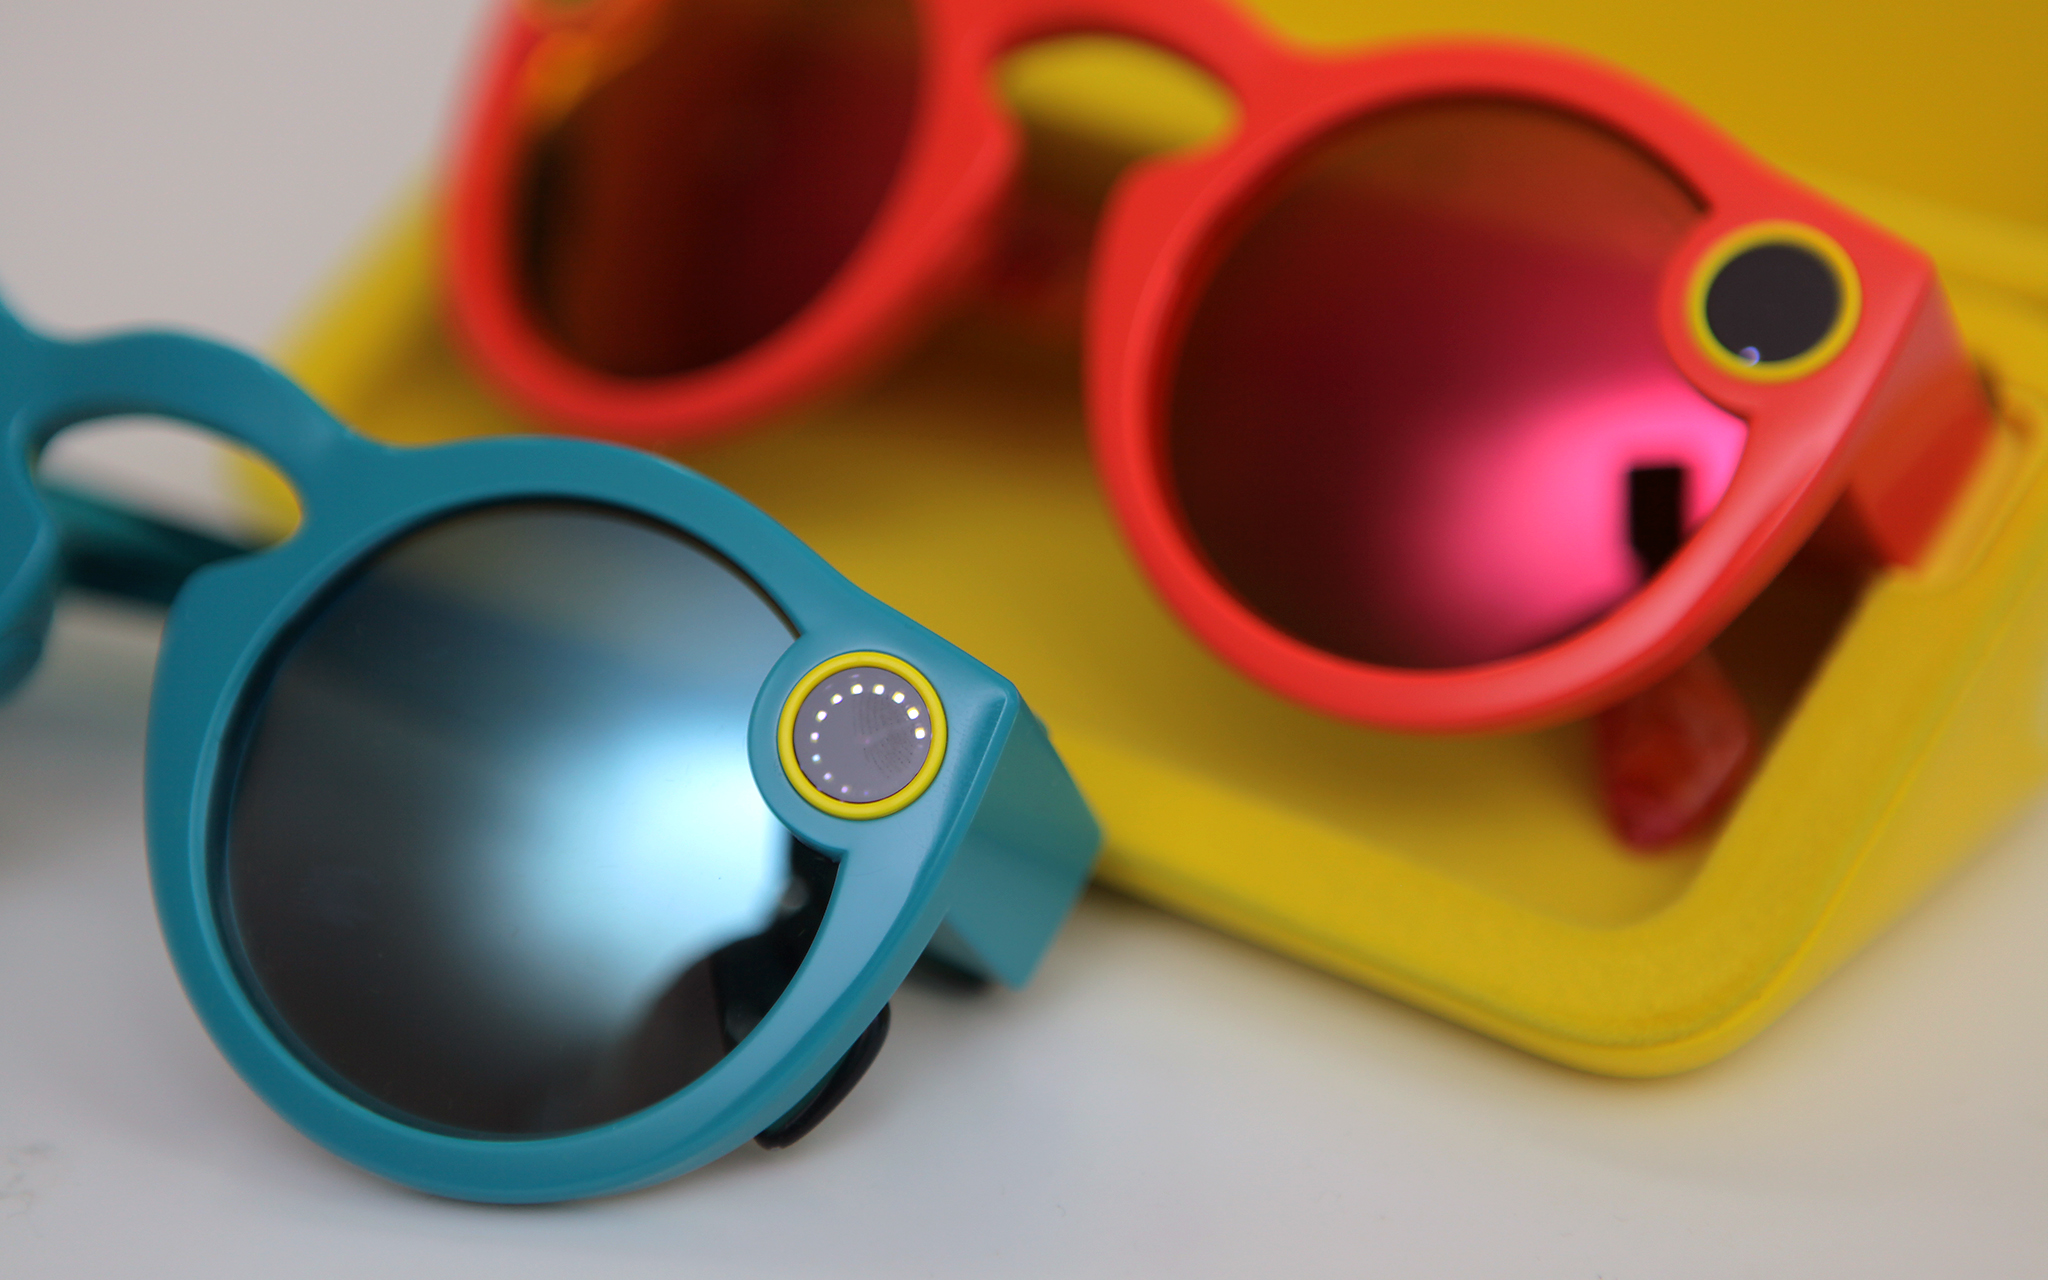 SNAPCHAT SPECTACLES JUST MIGHT BE CRAZY ENOUGH TO WORK